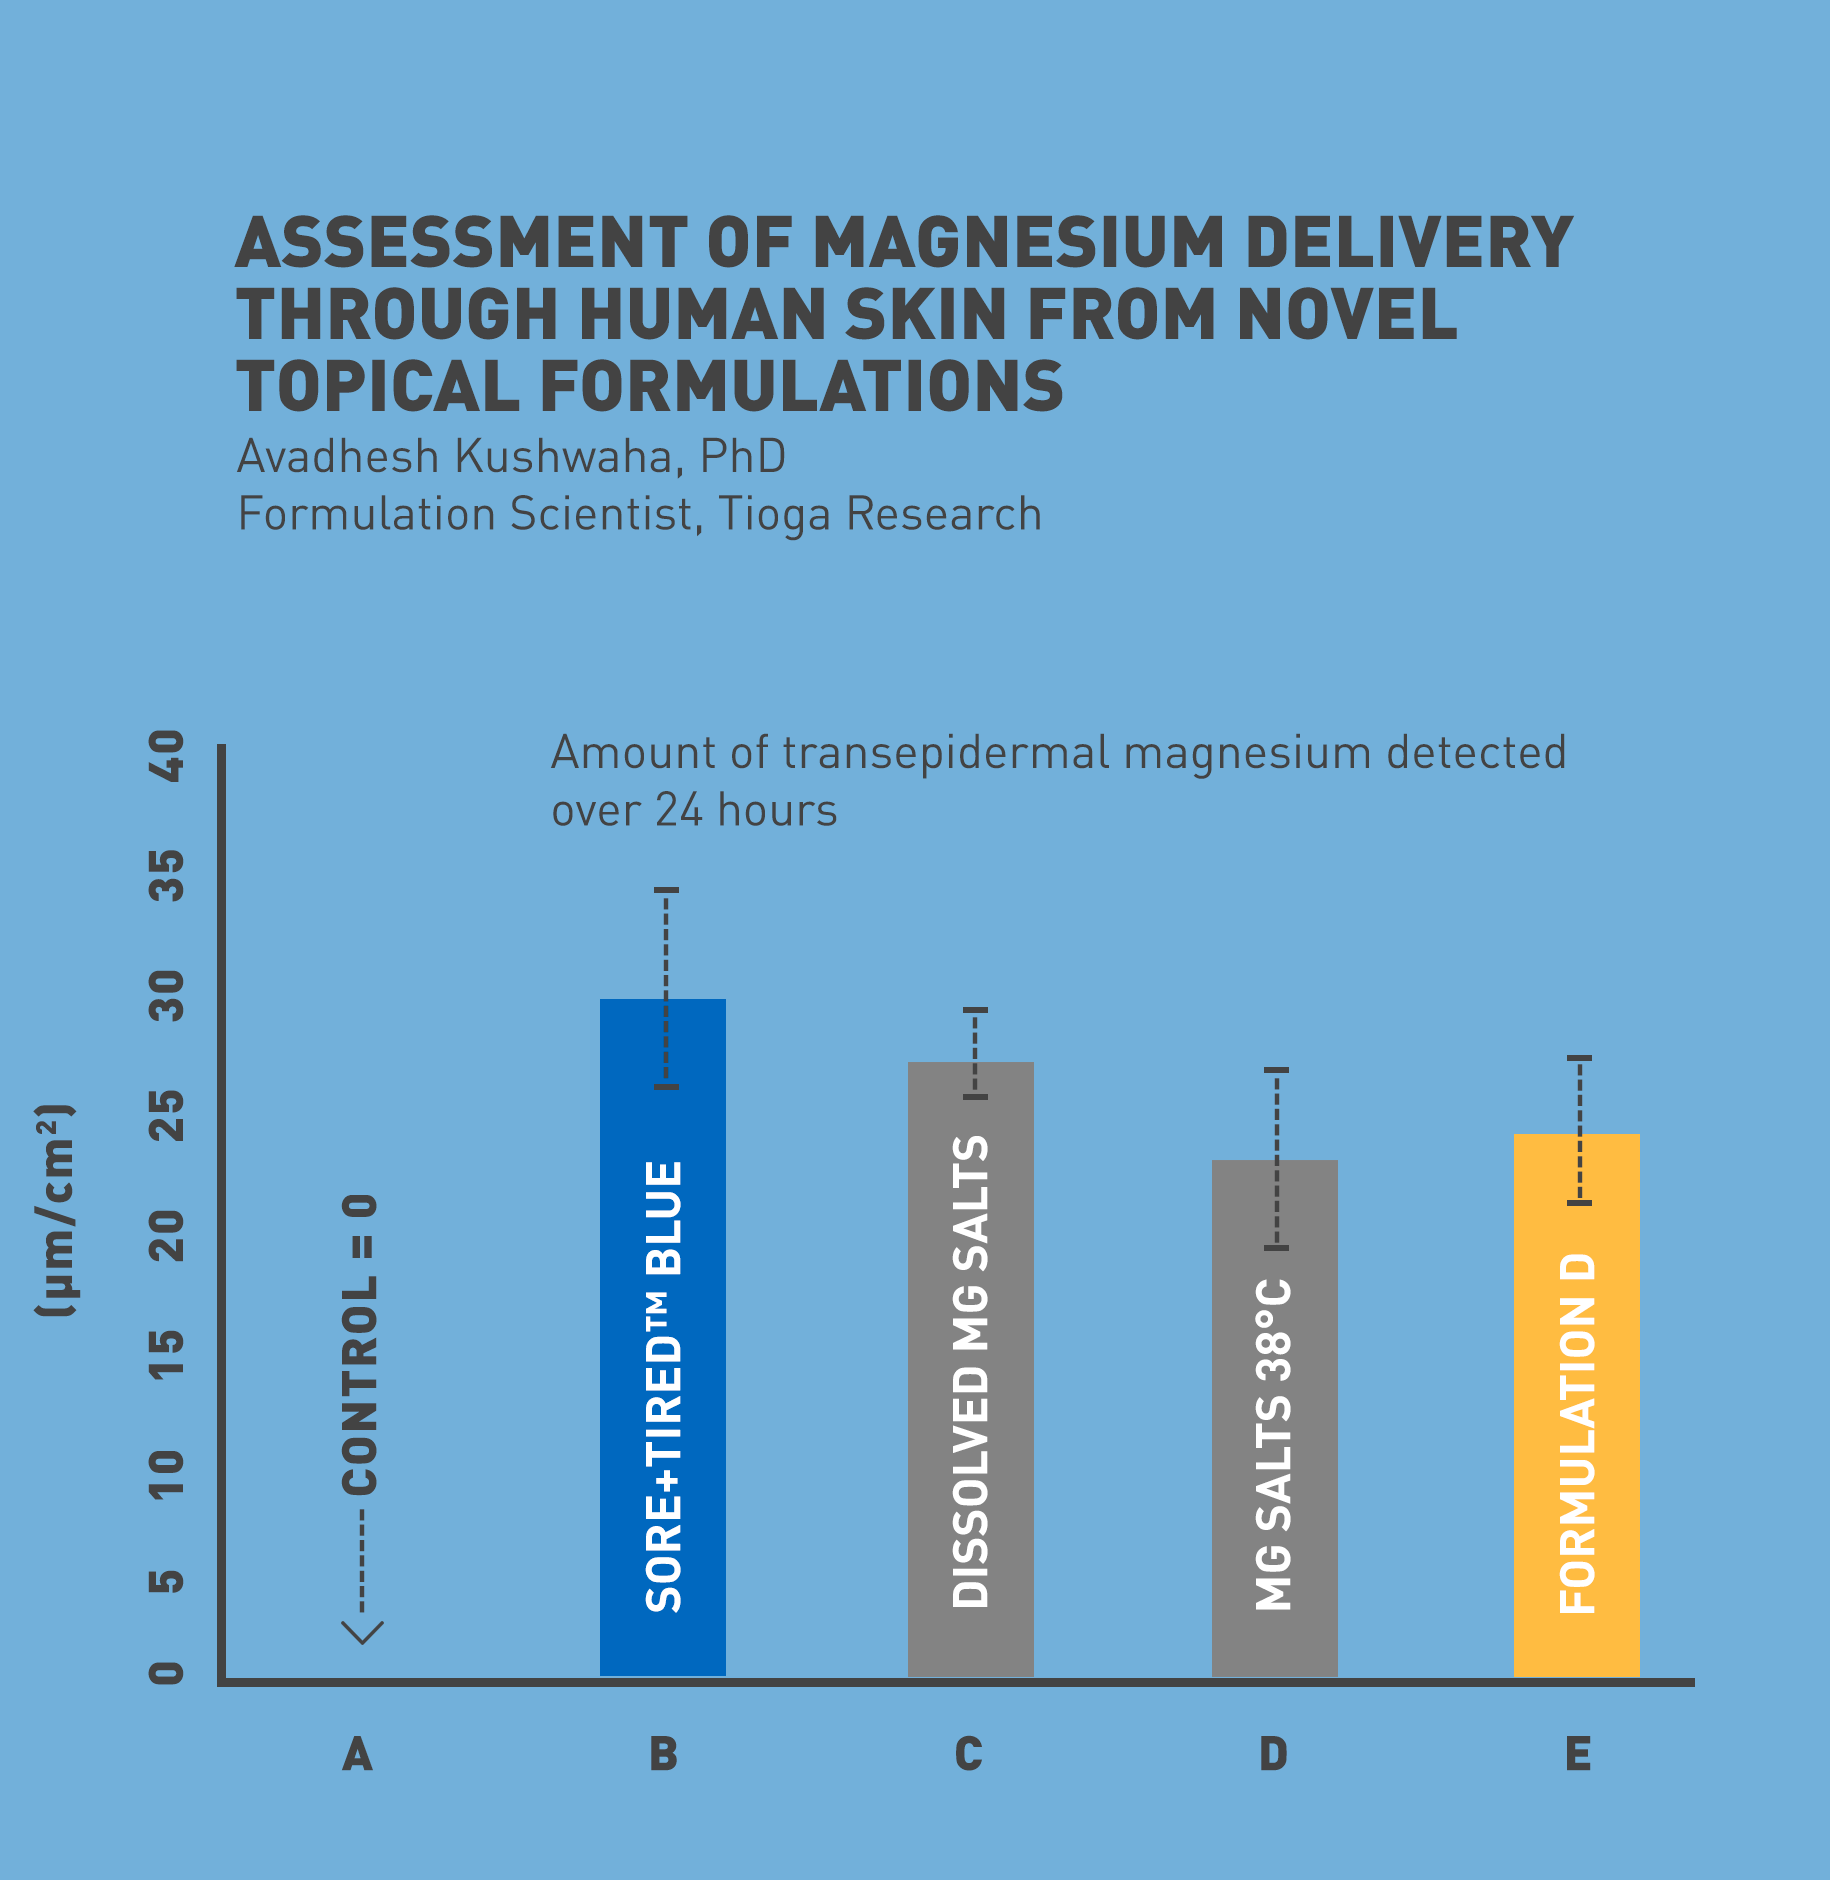 Figure 1 :  Results of a test to measure the amount of magnesium permeating human skin from 5 samples: A) pure water, B) Sore+Tired BLUE, C) magnesium salts in water at room temperature, D) magnesium salts at bath temperature, and E) an alternative formula using DMSO to promote skin permeation. (Kushwaha, et al, Tioga Research, 2016) via Sore+Tired website